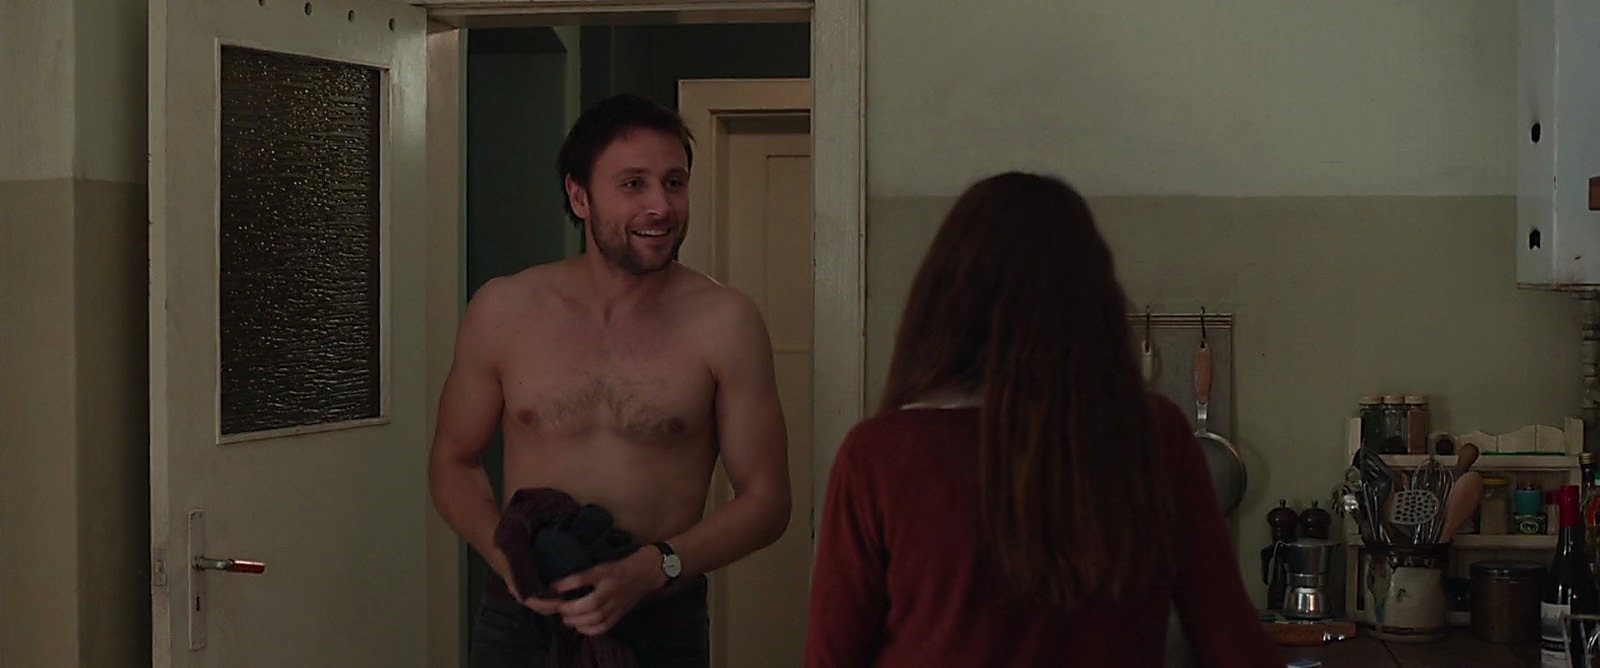 Max Riemelt sexy shirtless scene May 27, 2017, 4am